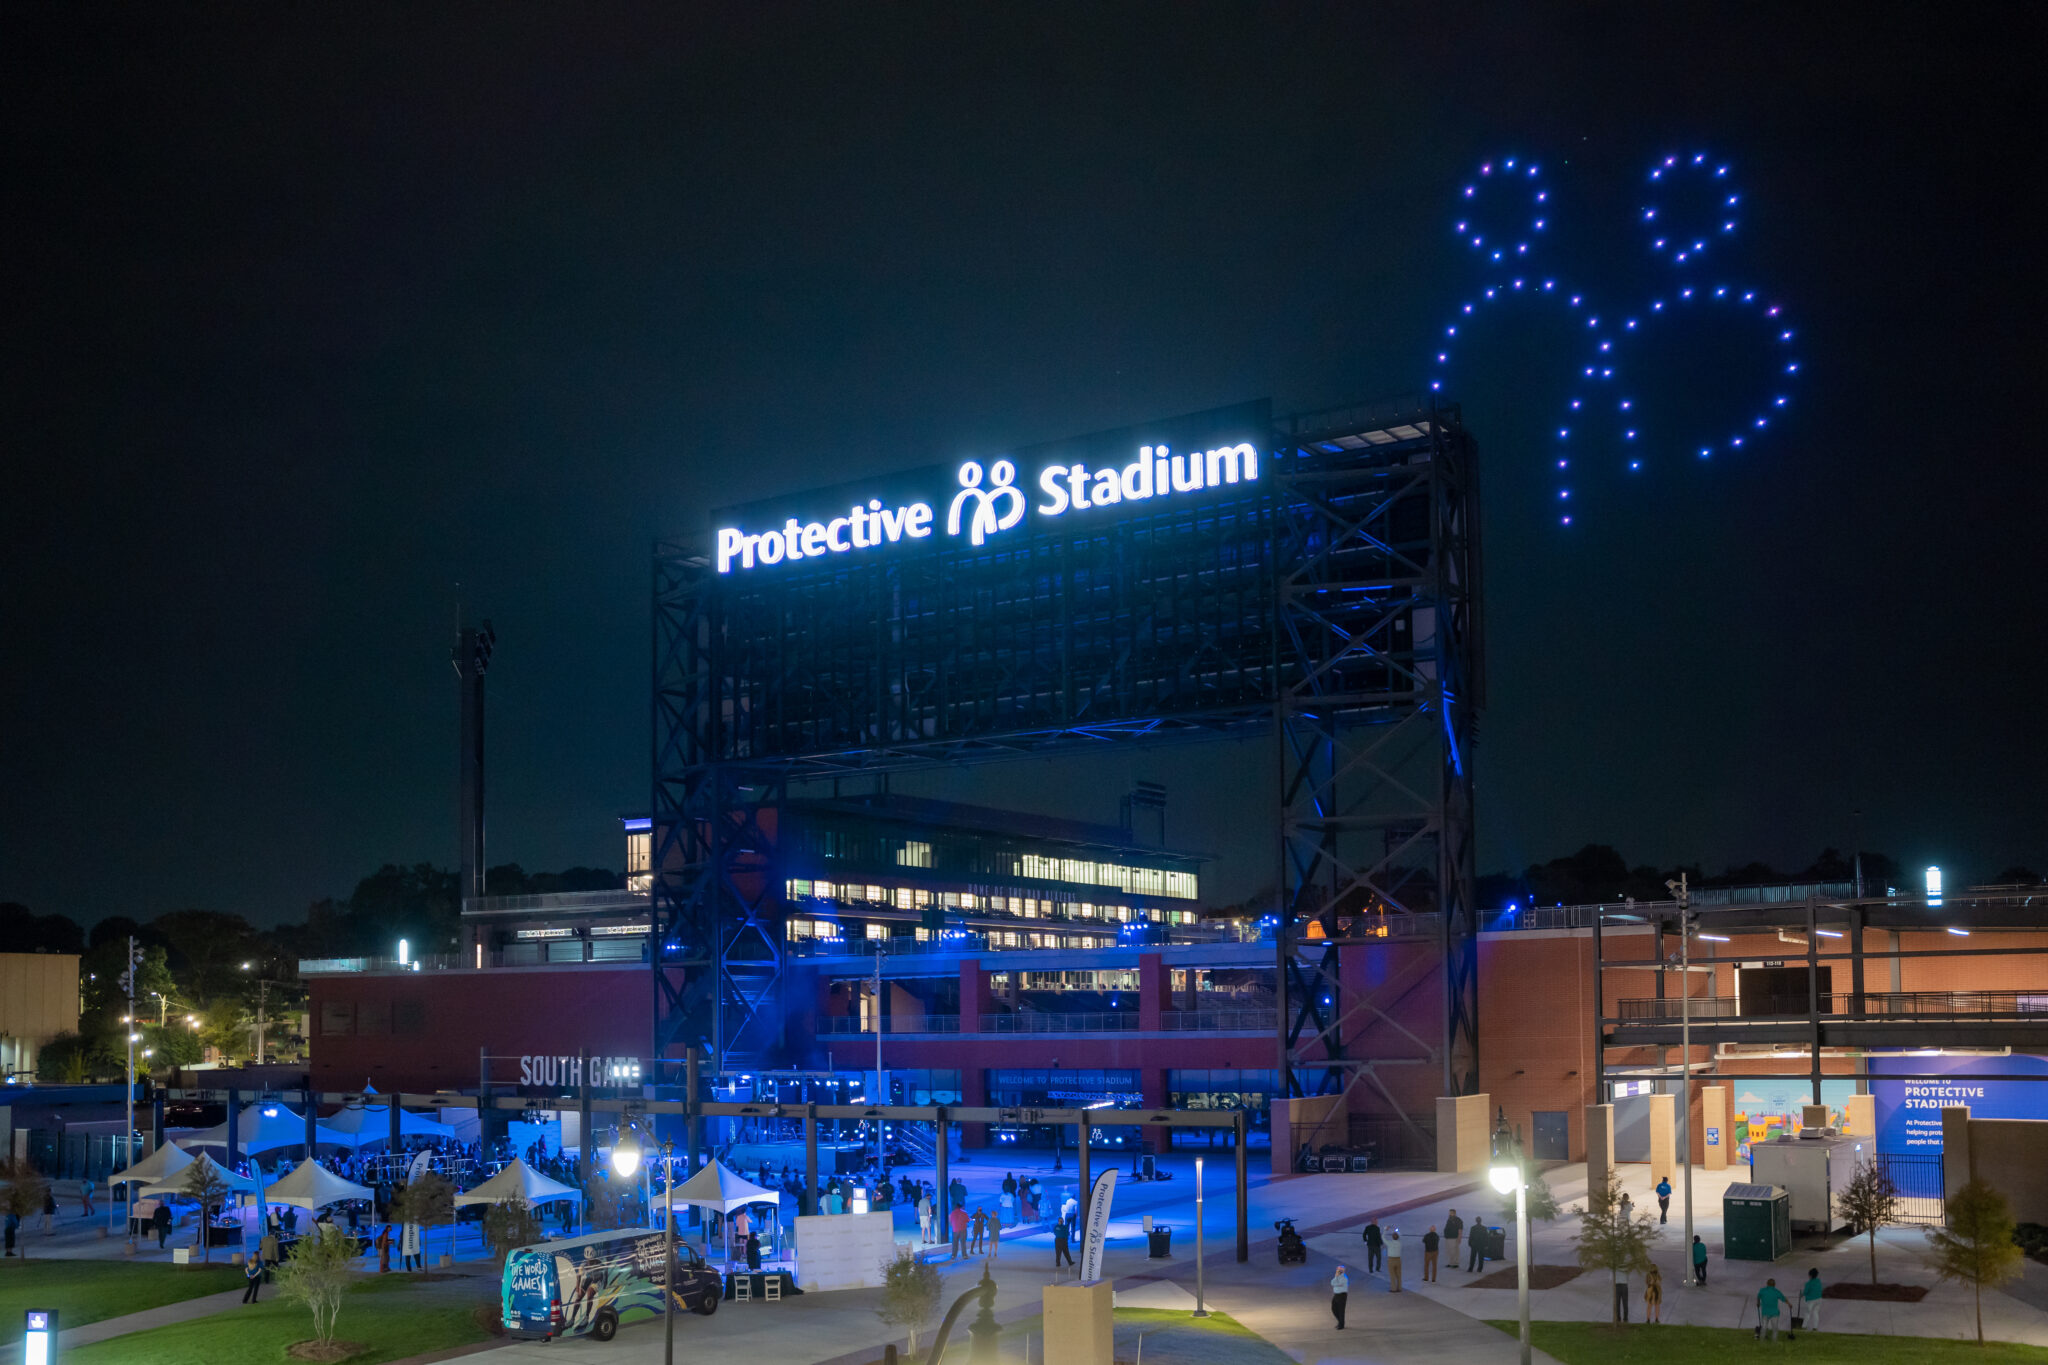 Protective Stadium collabs with local apparel brand FLY V—why it matters